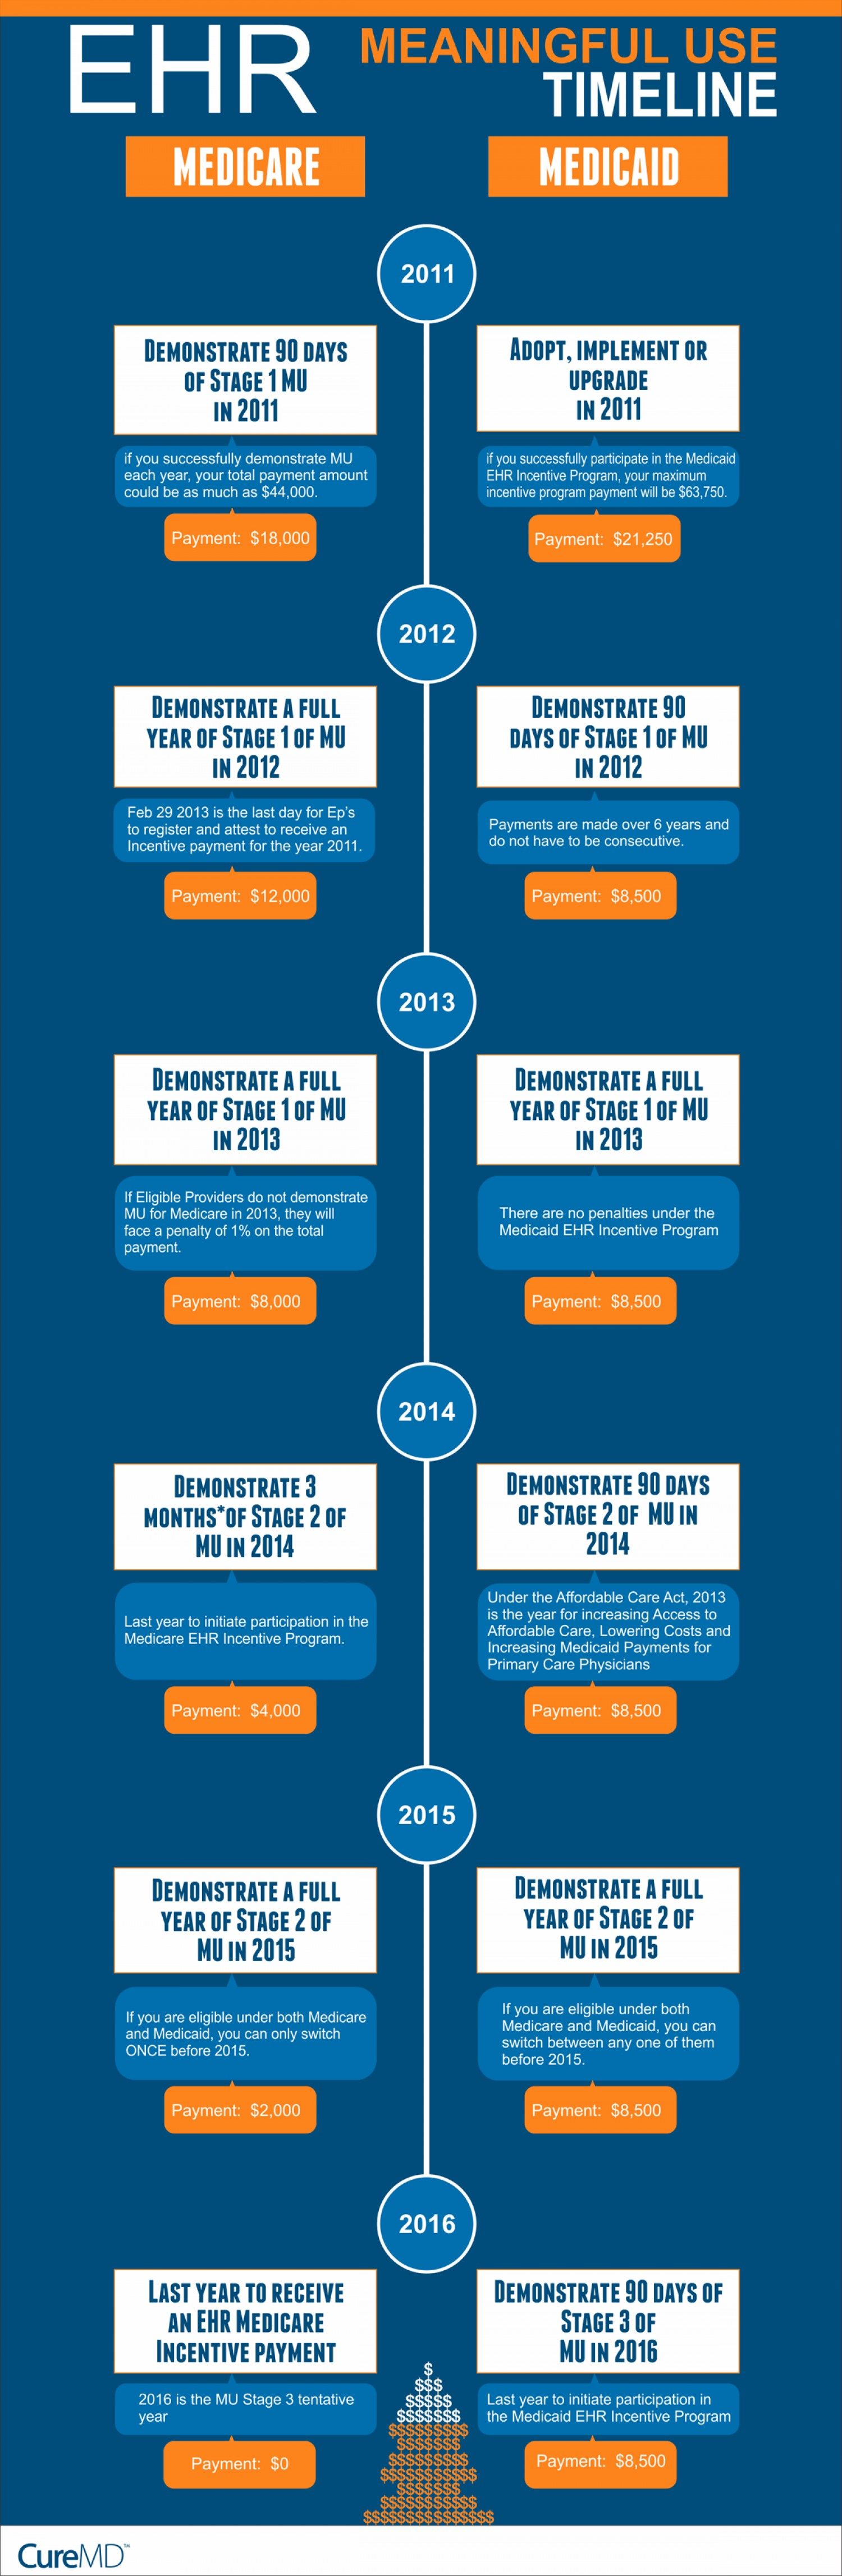 EHR Meaningful use Timeline